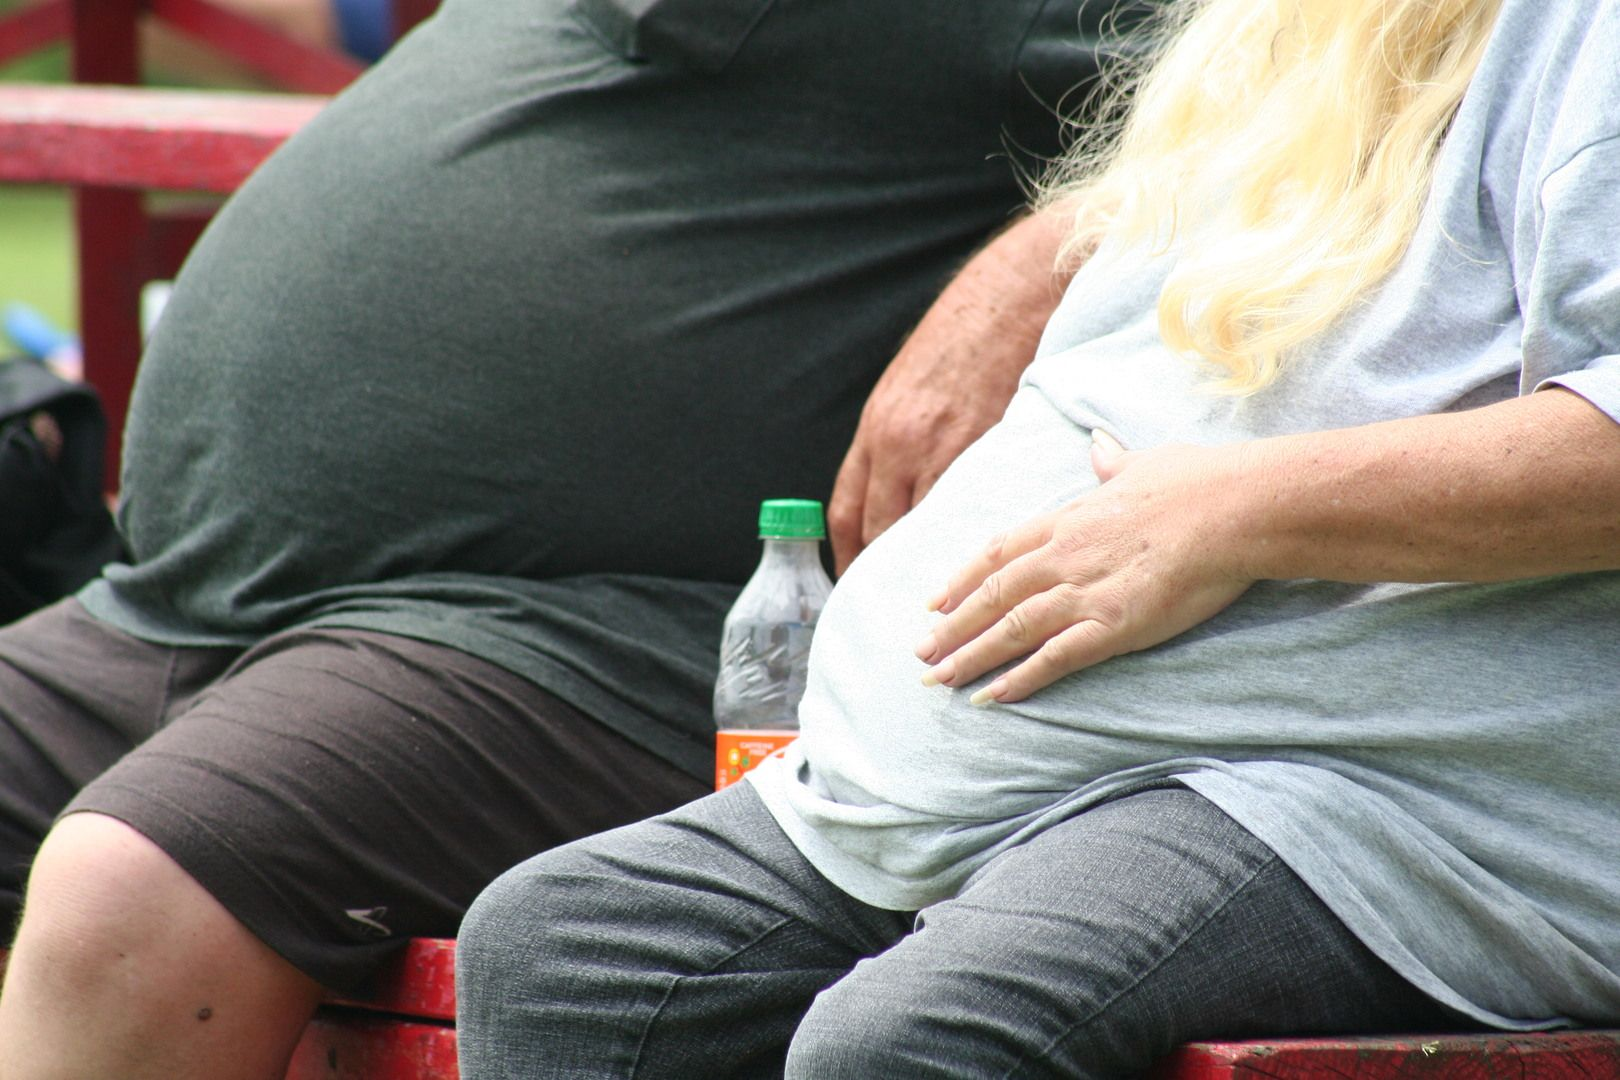 5 of the World's Most Overweight Countries